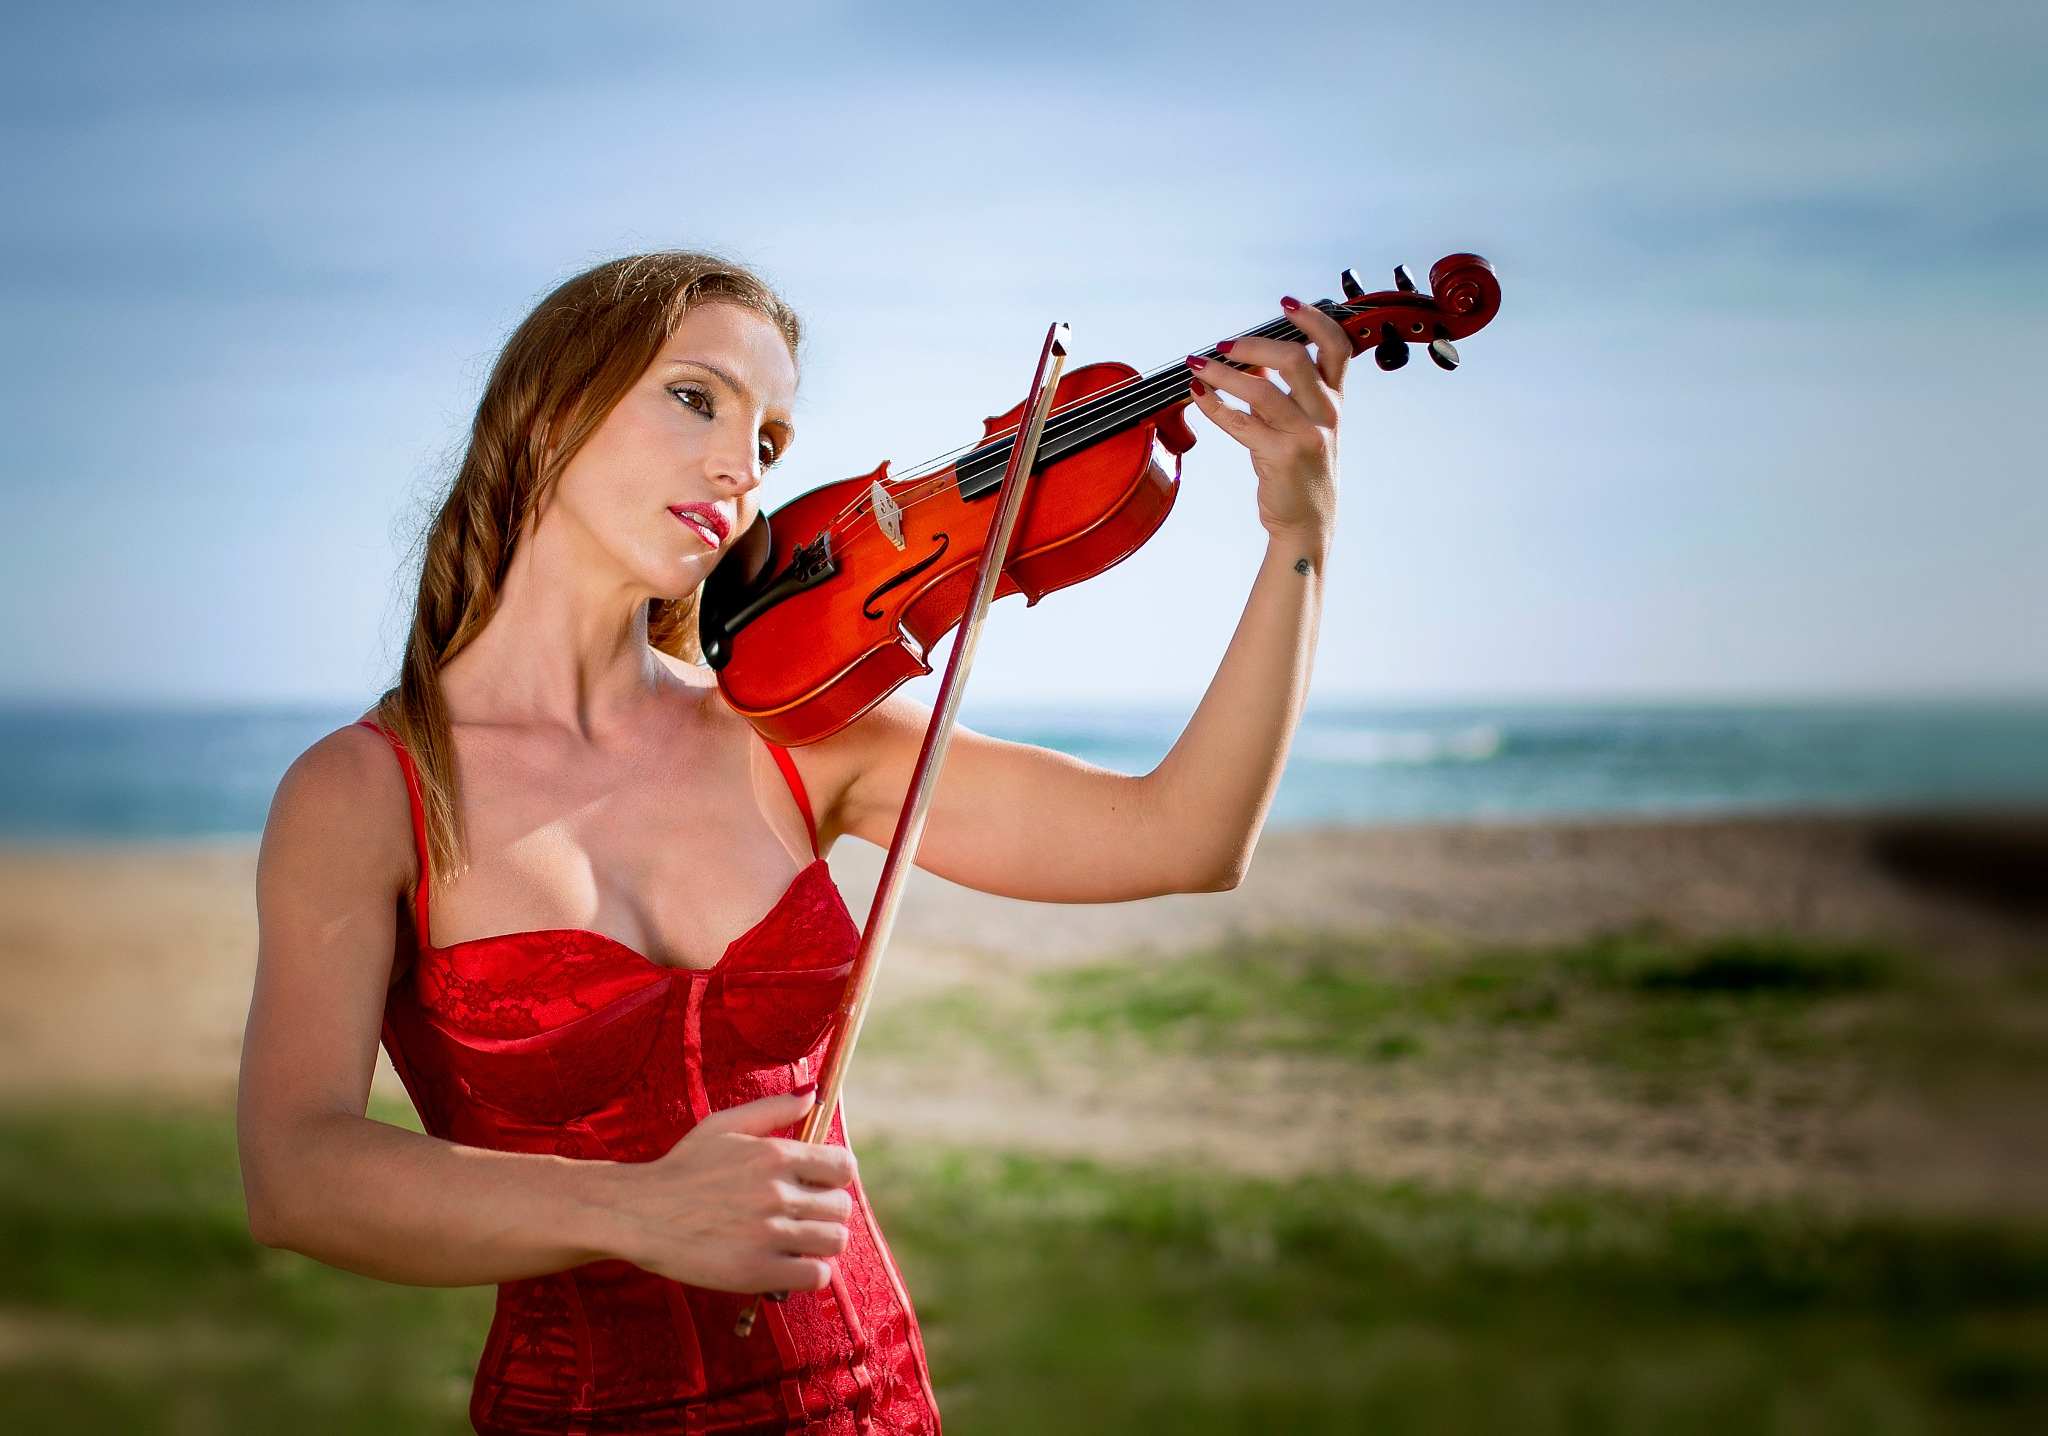 The violinist  by AndresGil